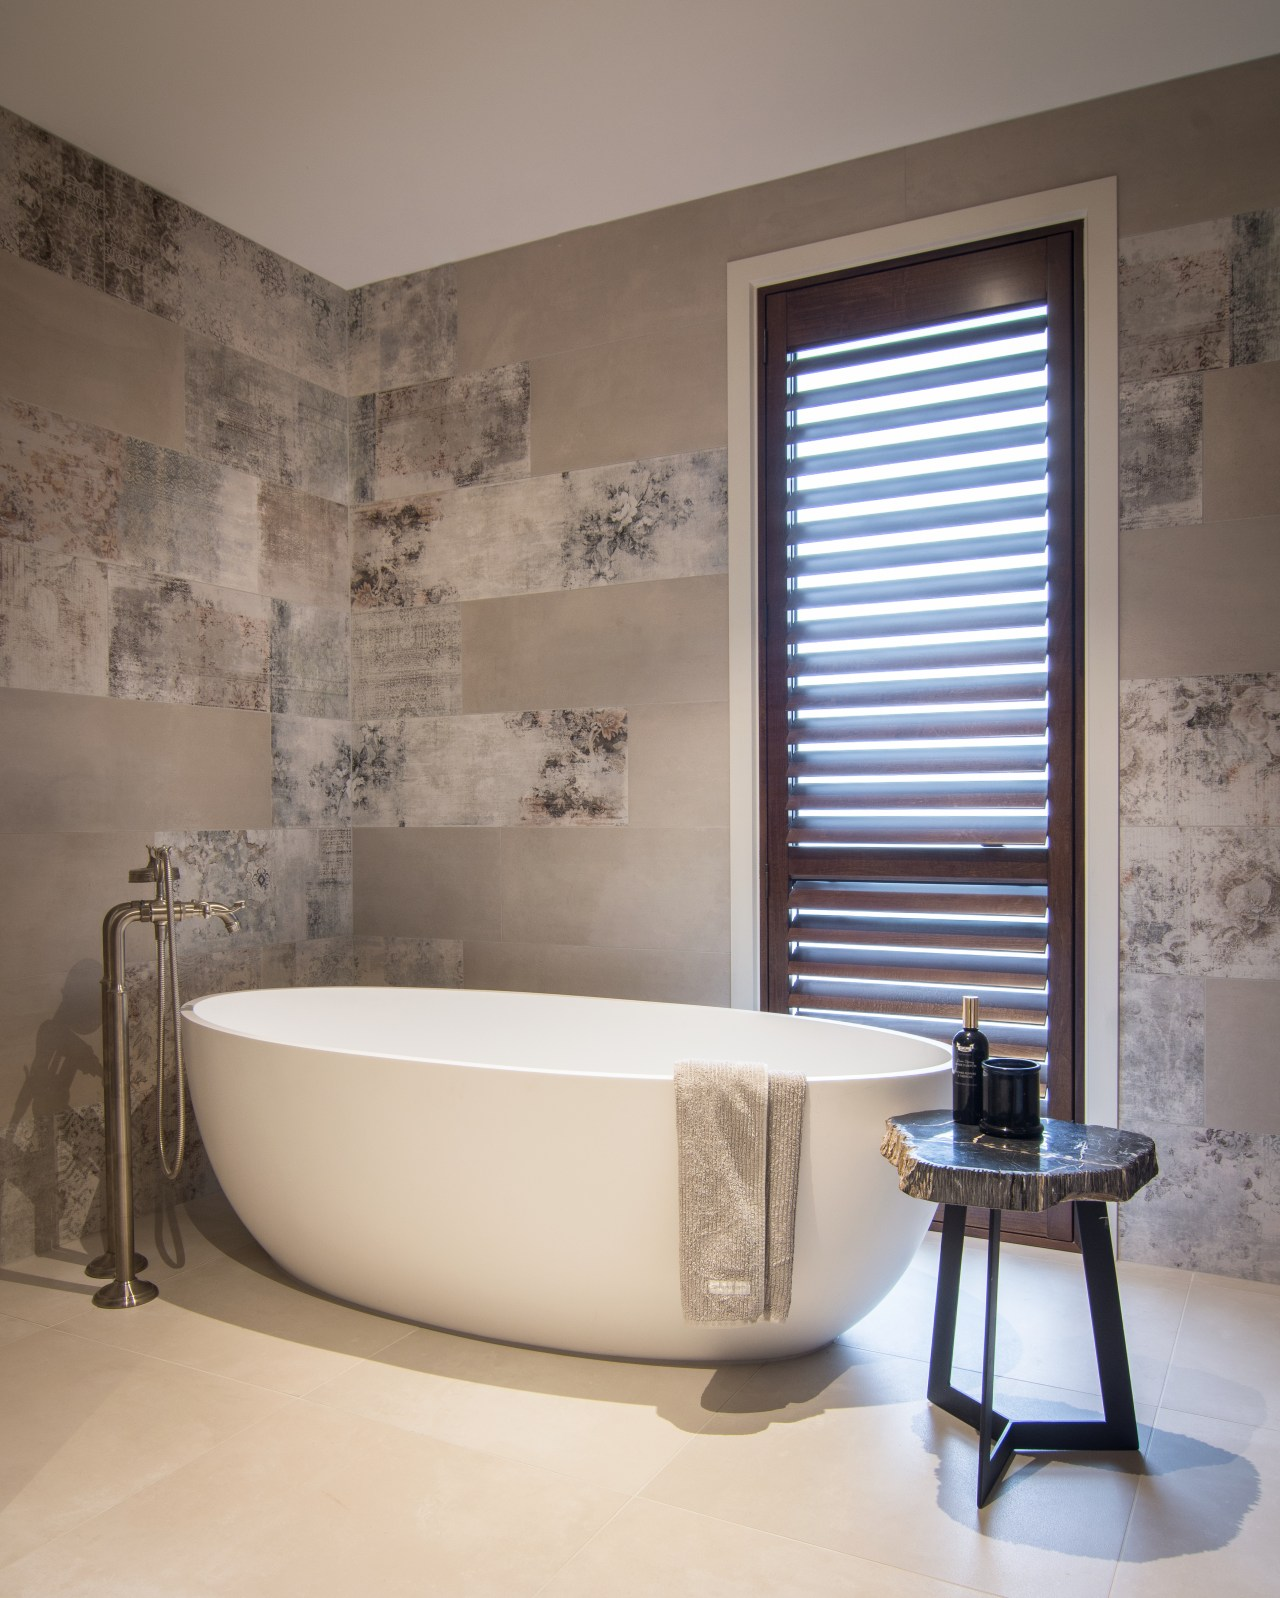 Large, distressed-look wall tiles add to the sense